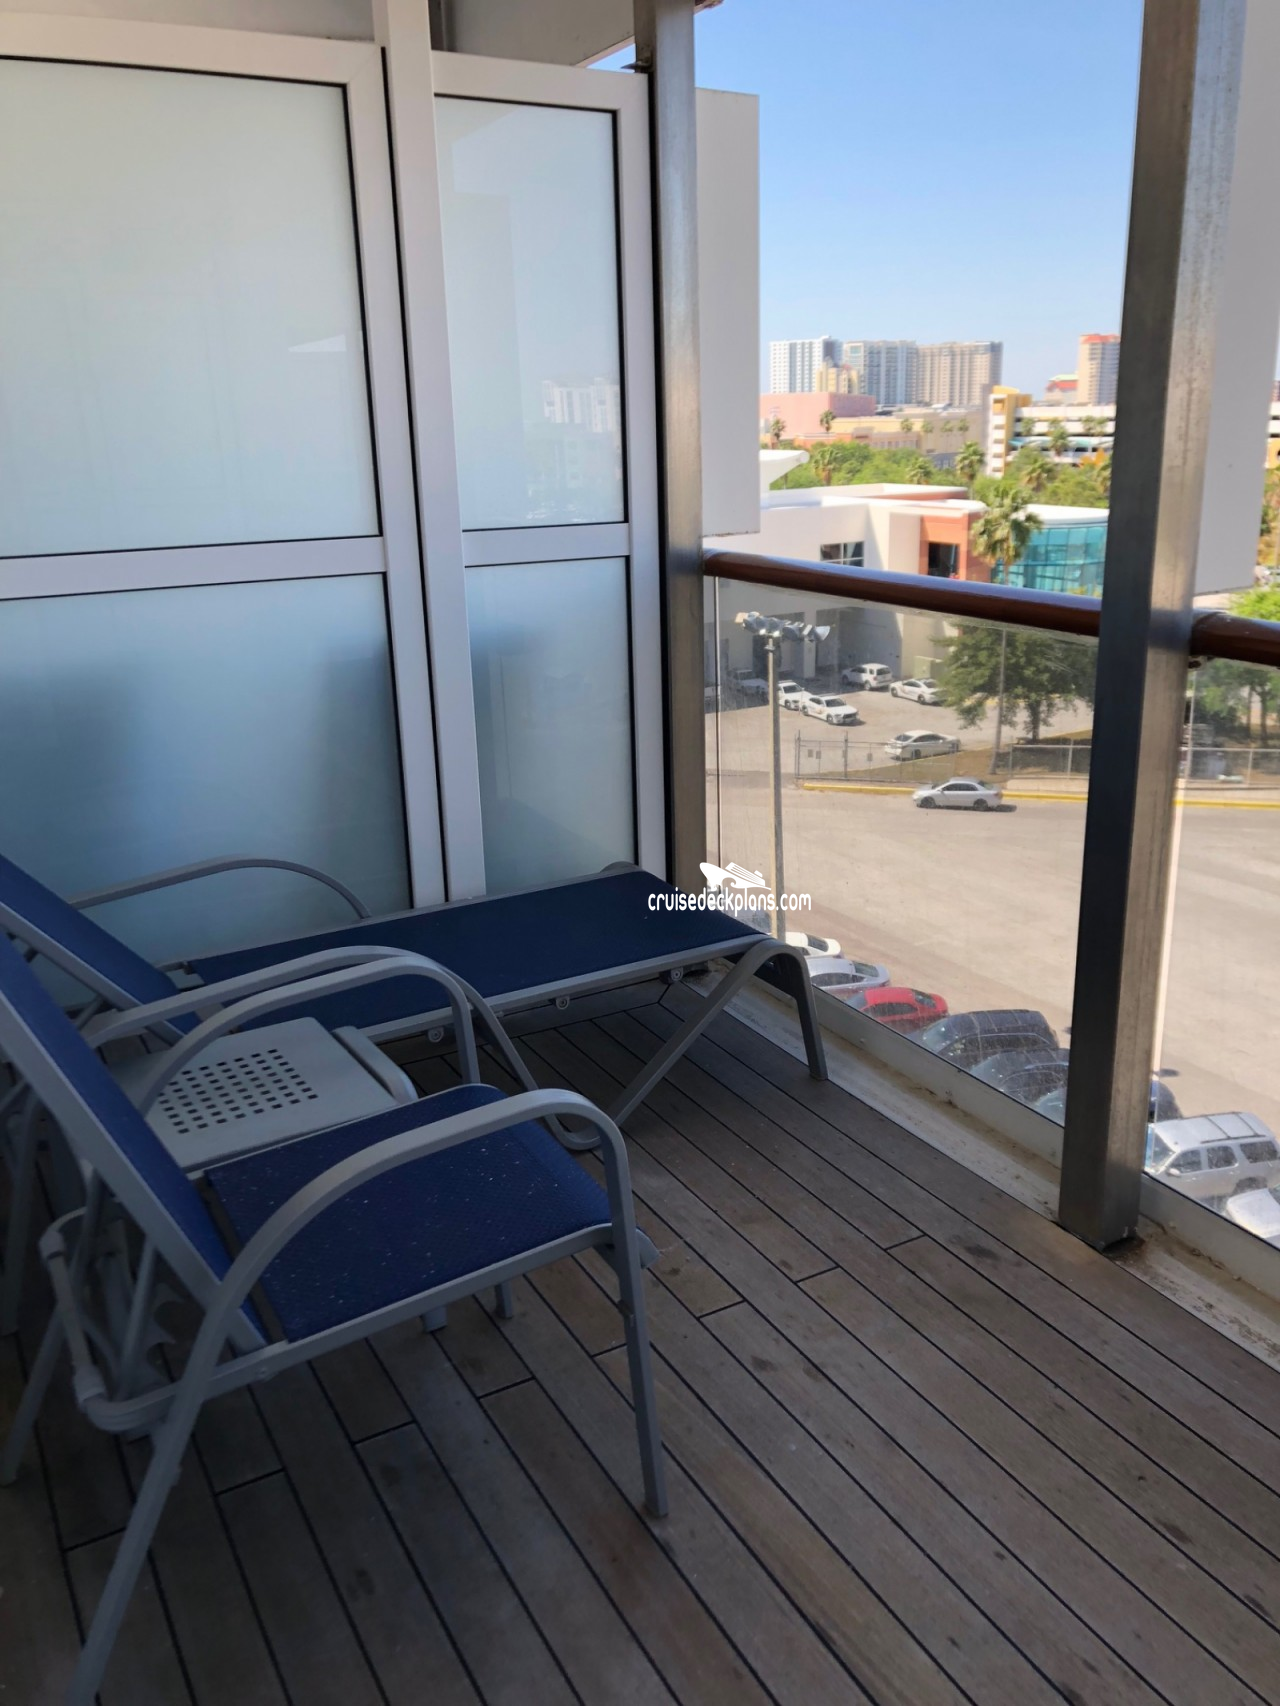 Carnival Miracle Premium Balcony Details